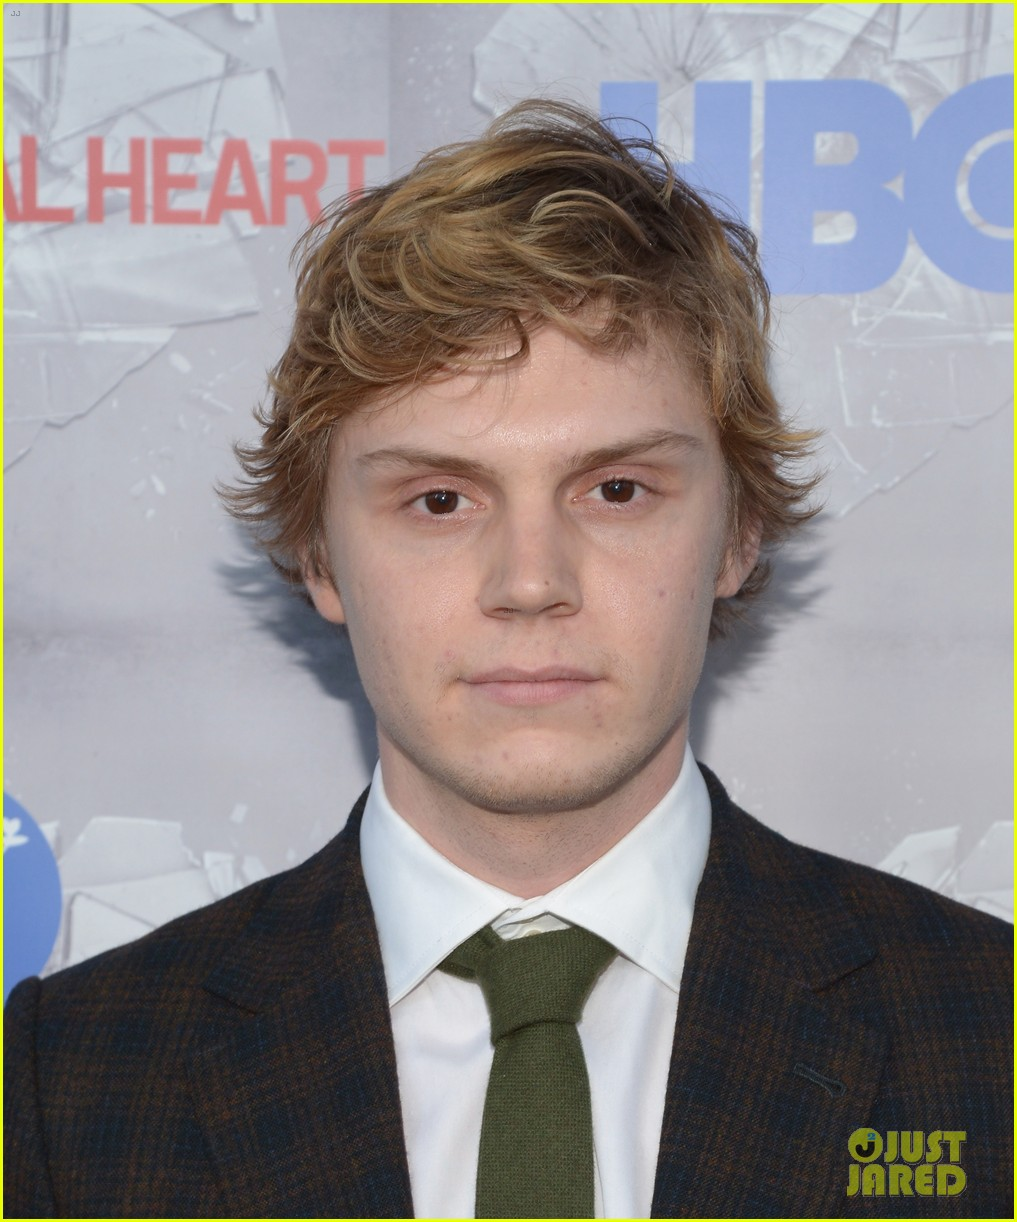 chord overstreet evan peters normal heart premiere 033118012